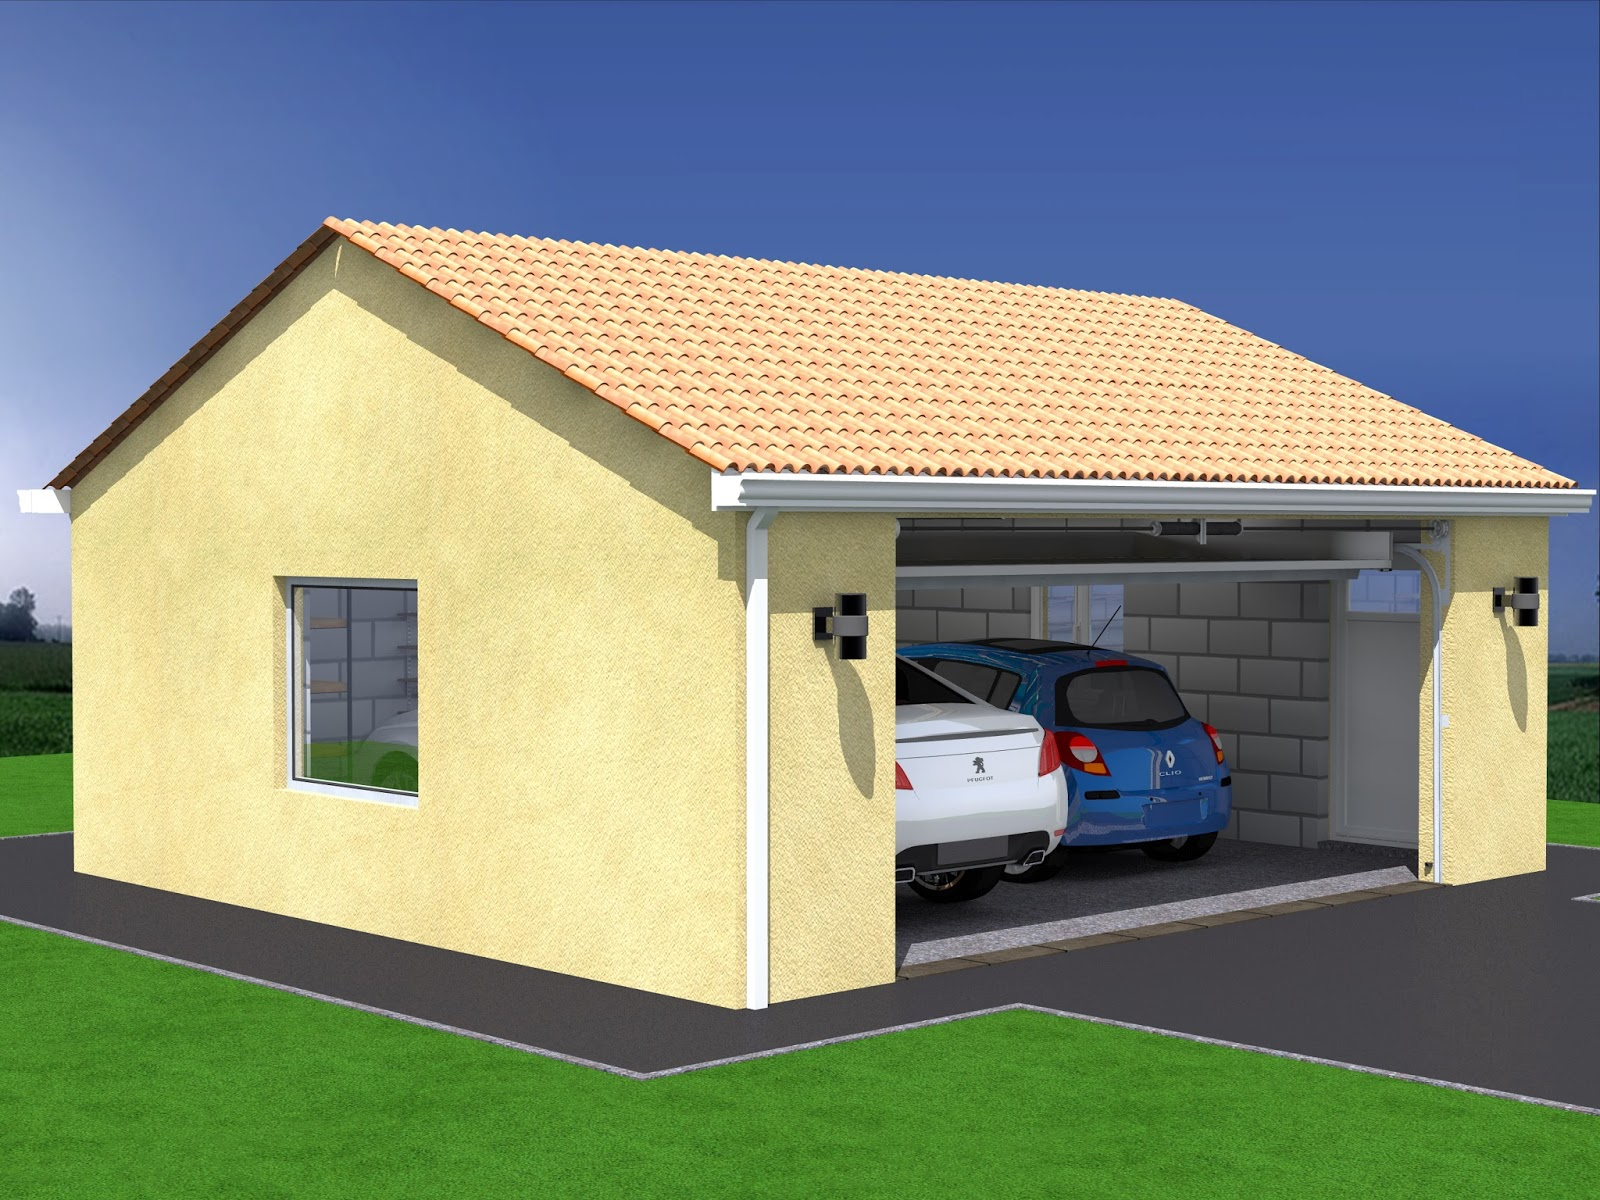 Cout de construction d un garage double l 39 impression 3d for Cout construction garage 20m2